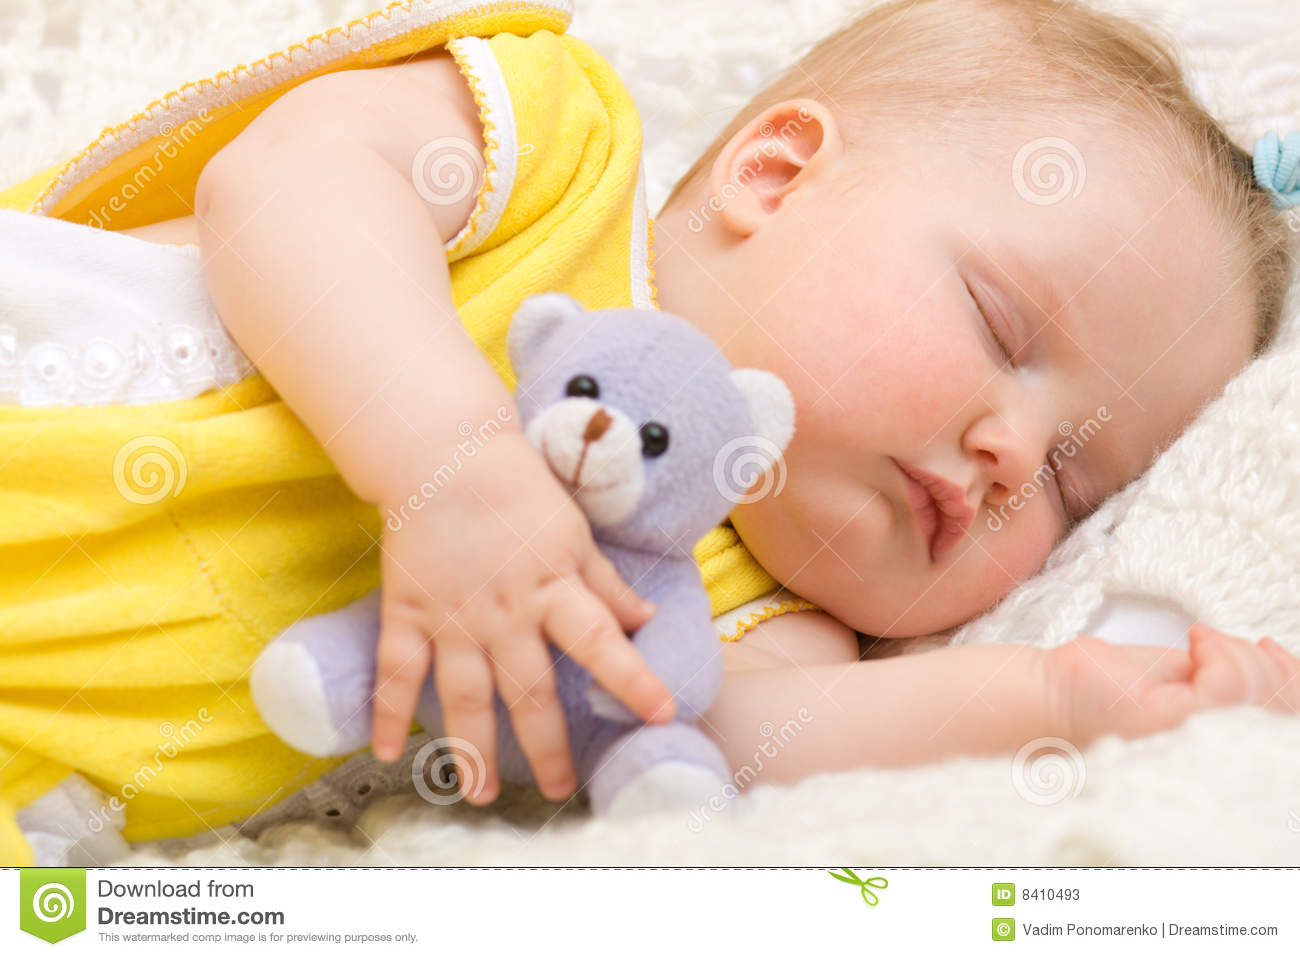 When To Use Pillow And Blanket For Toddler